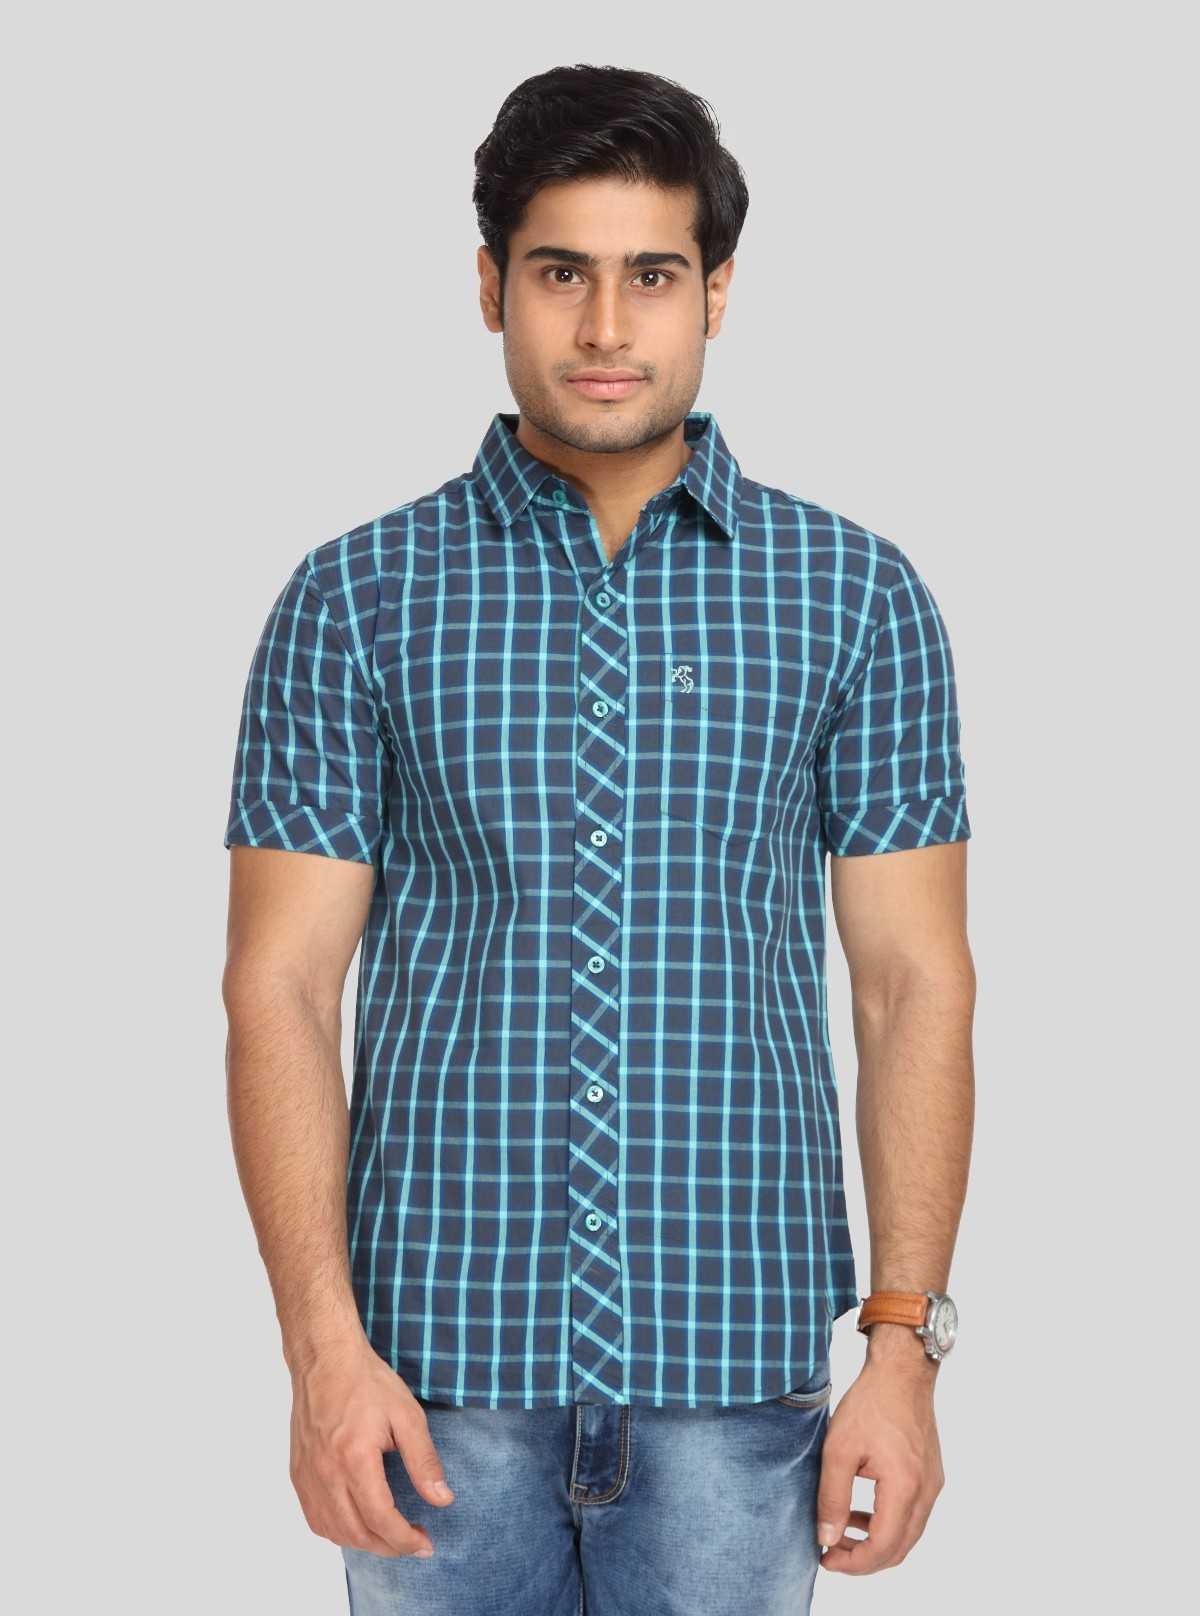 Indigo Checks casual shirt